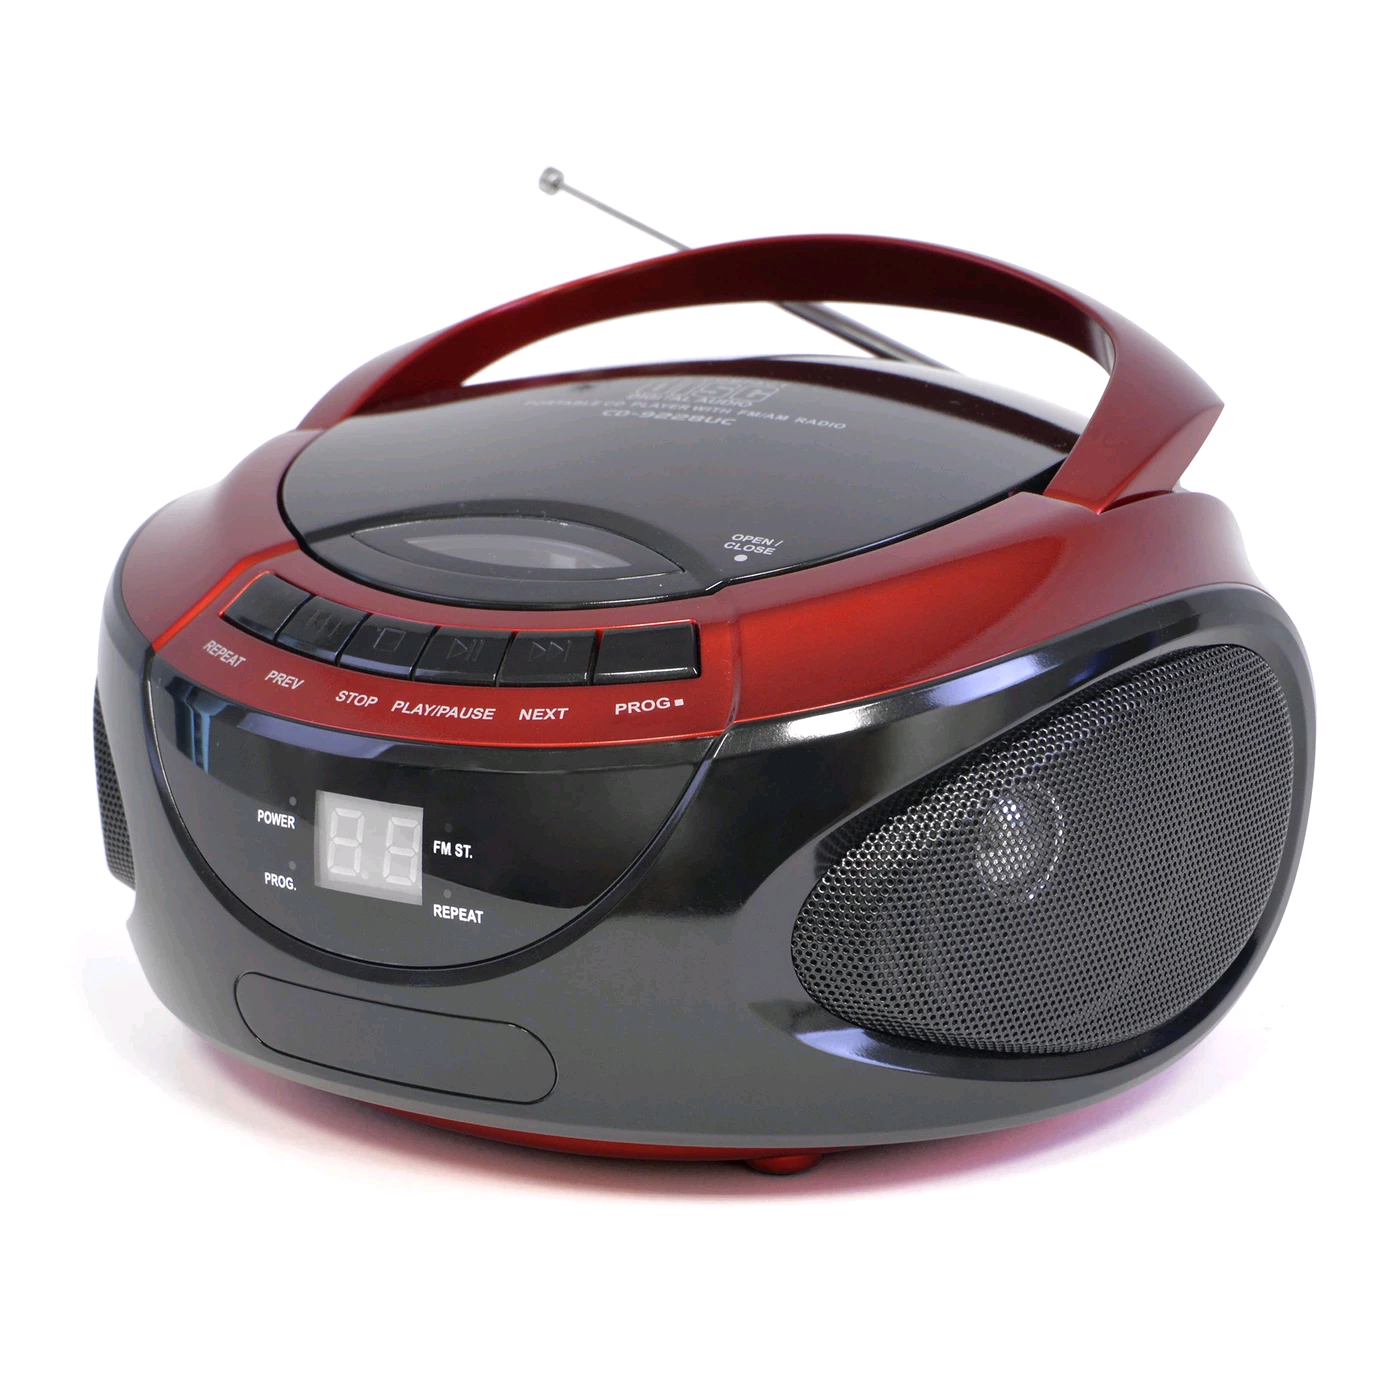 Lloytron Portable Stereo CD Player With 2 Band Radio Red/Black